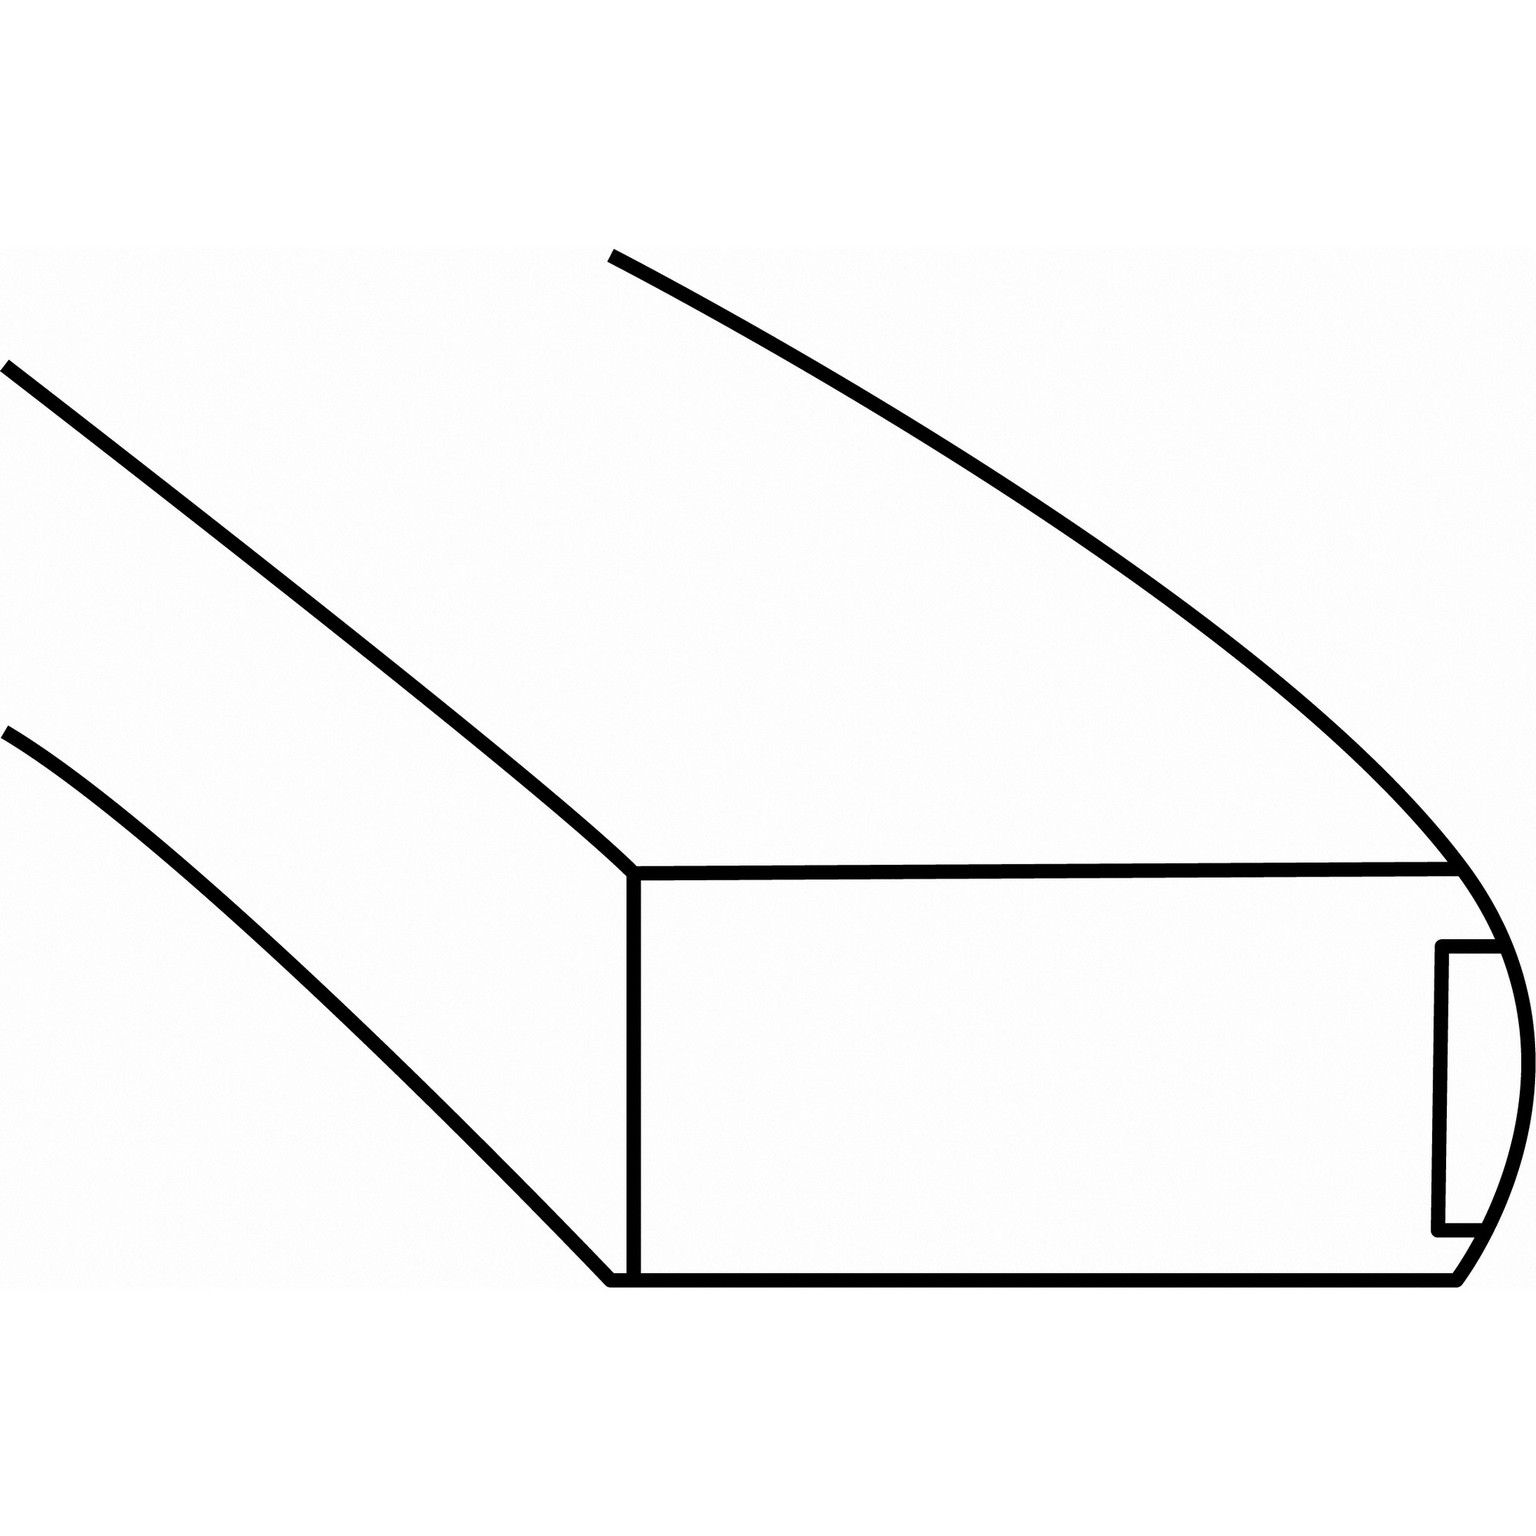 Ford Thunderbird Engine Piston Ring Set Replacement Dj Rock Seal 1996 Diagram 6 Cyl 38l Sealed Power E 911k Type Premium Use W H820cp 2 150mm 1 300mm